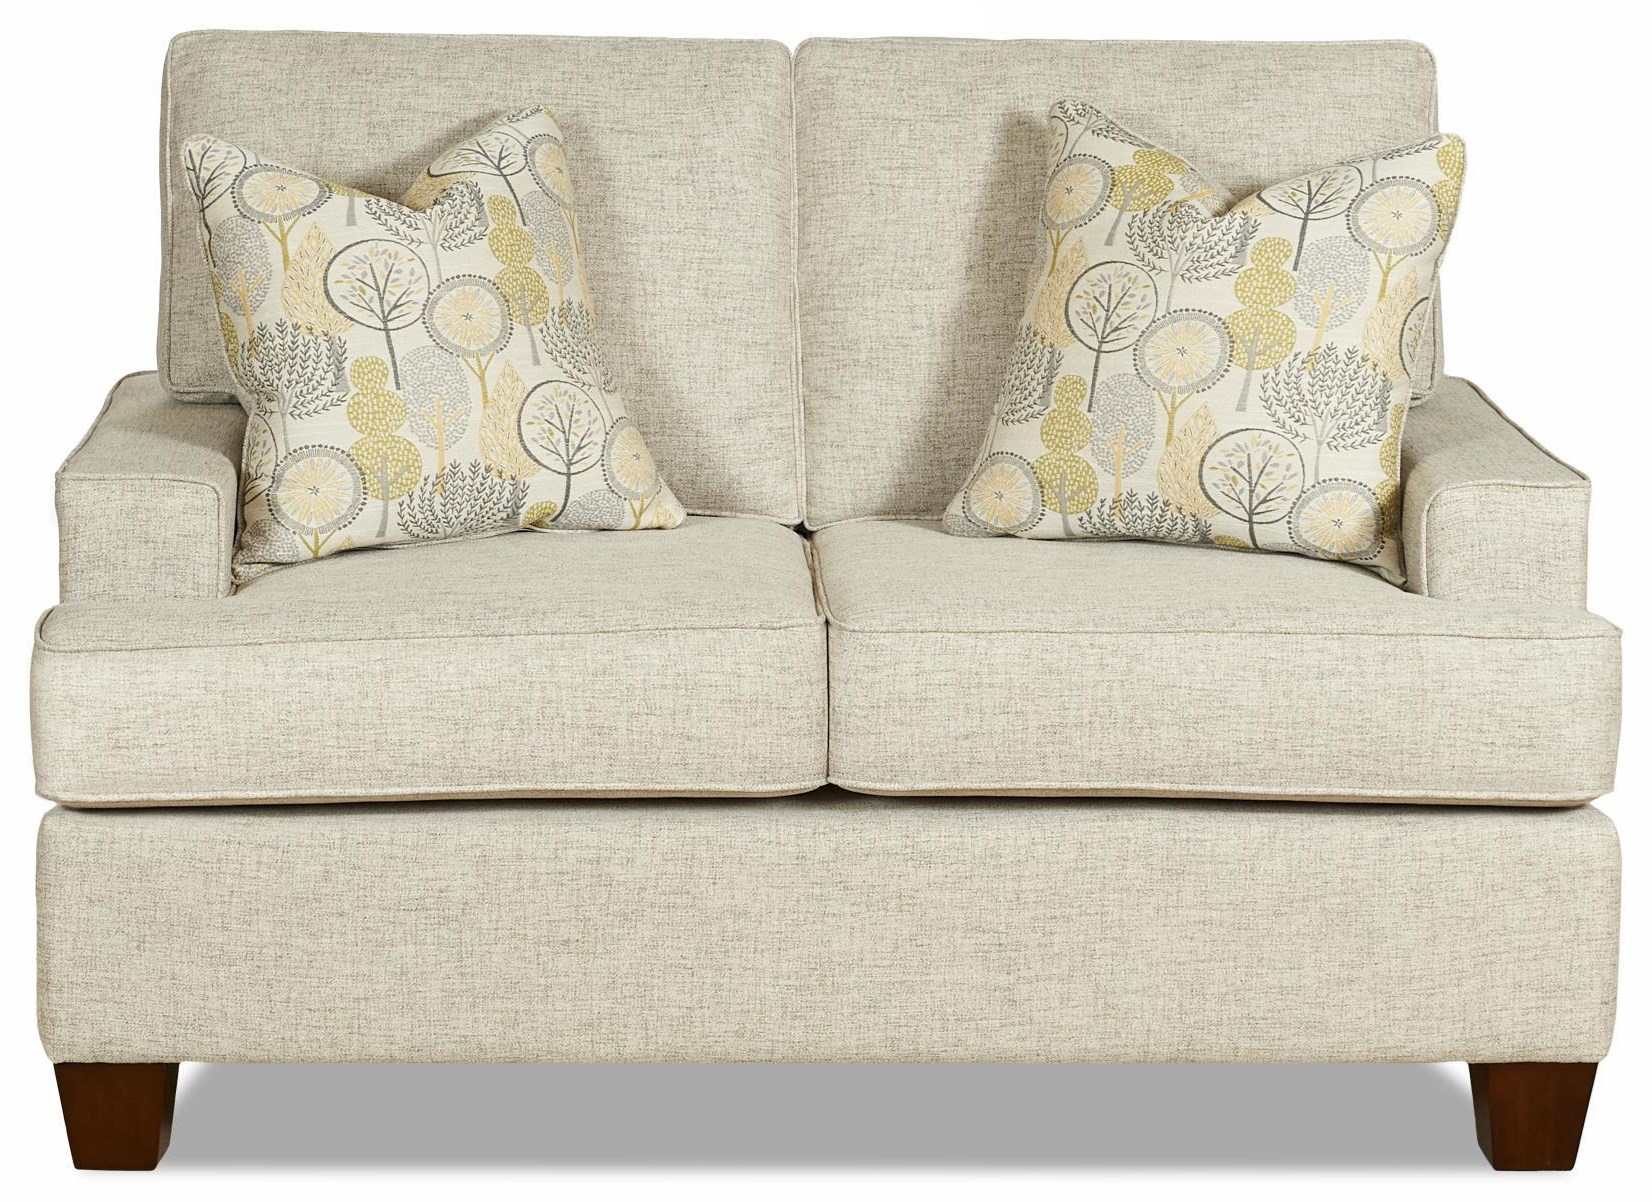 Bayside Loveseat by Wood House at Crowley Furniture & Mattress